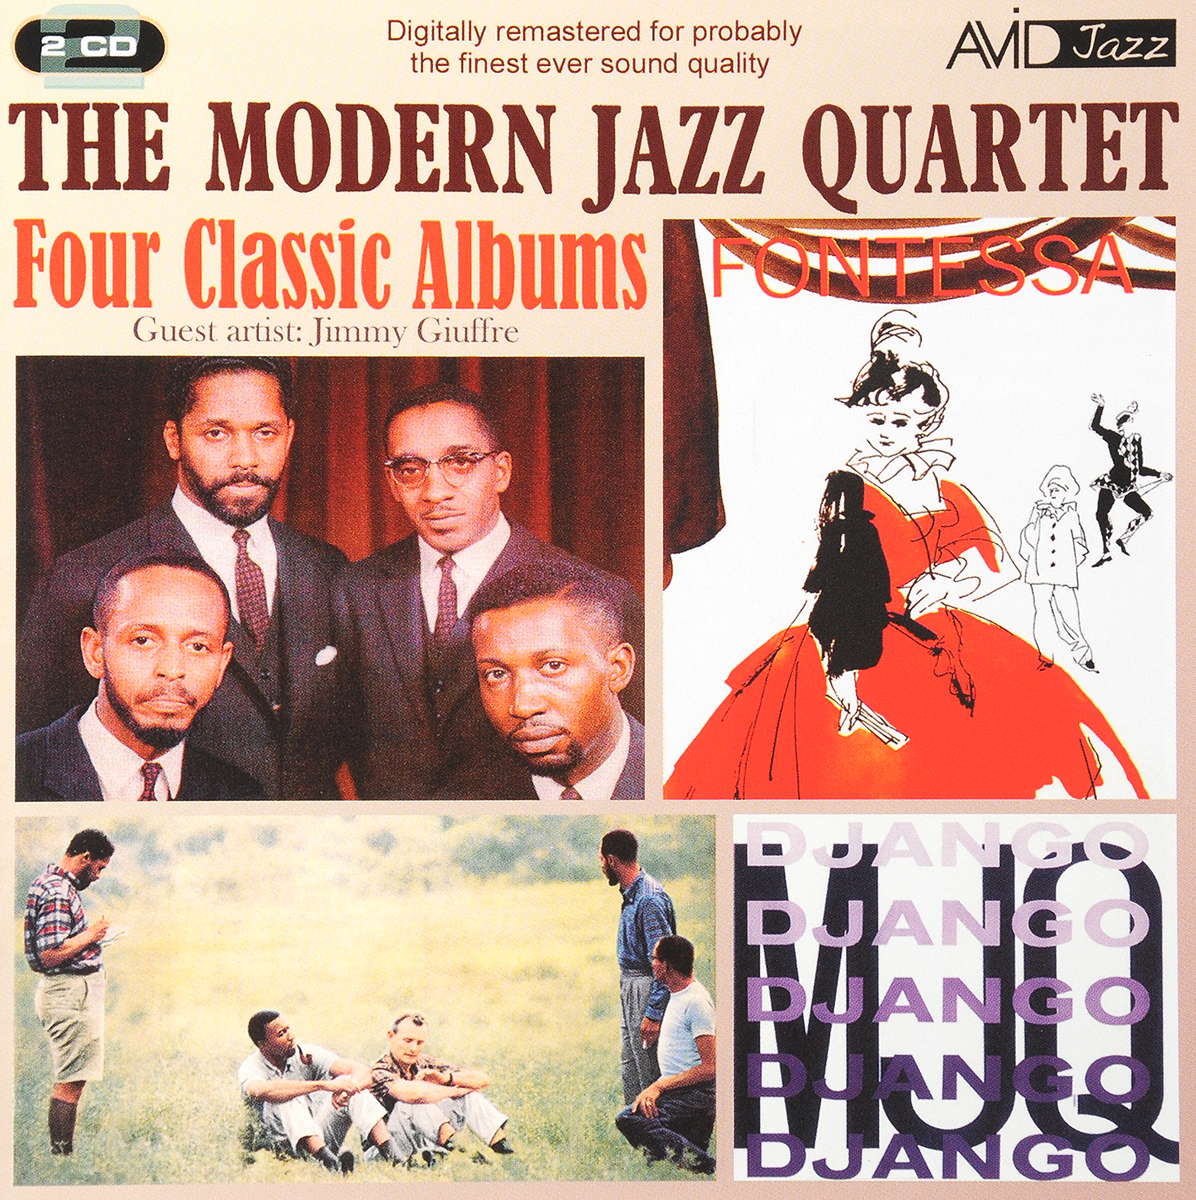 The Modern Jazz Quartet The Modern Jazz Quartet. Four Classic Albums (2 CD) classic albums live toronto